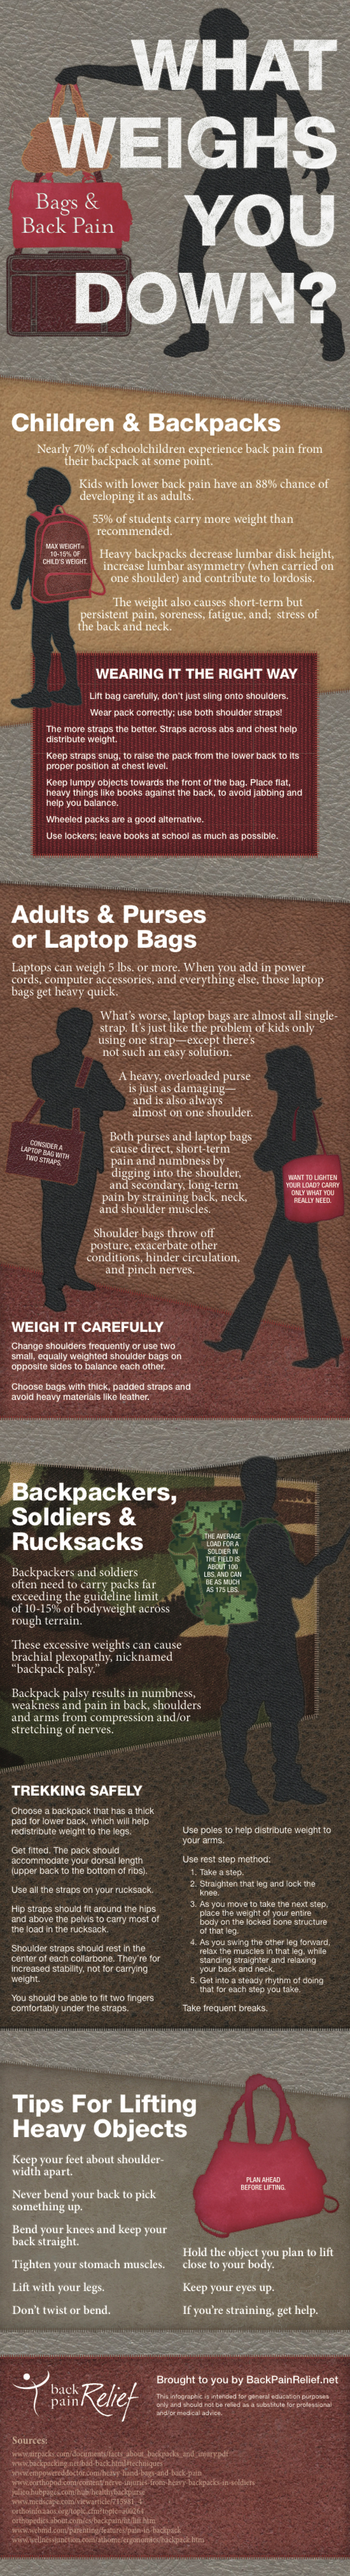 What Weighs You Down: Bags and Back Pain Infographic